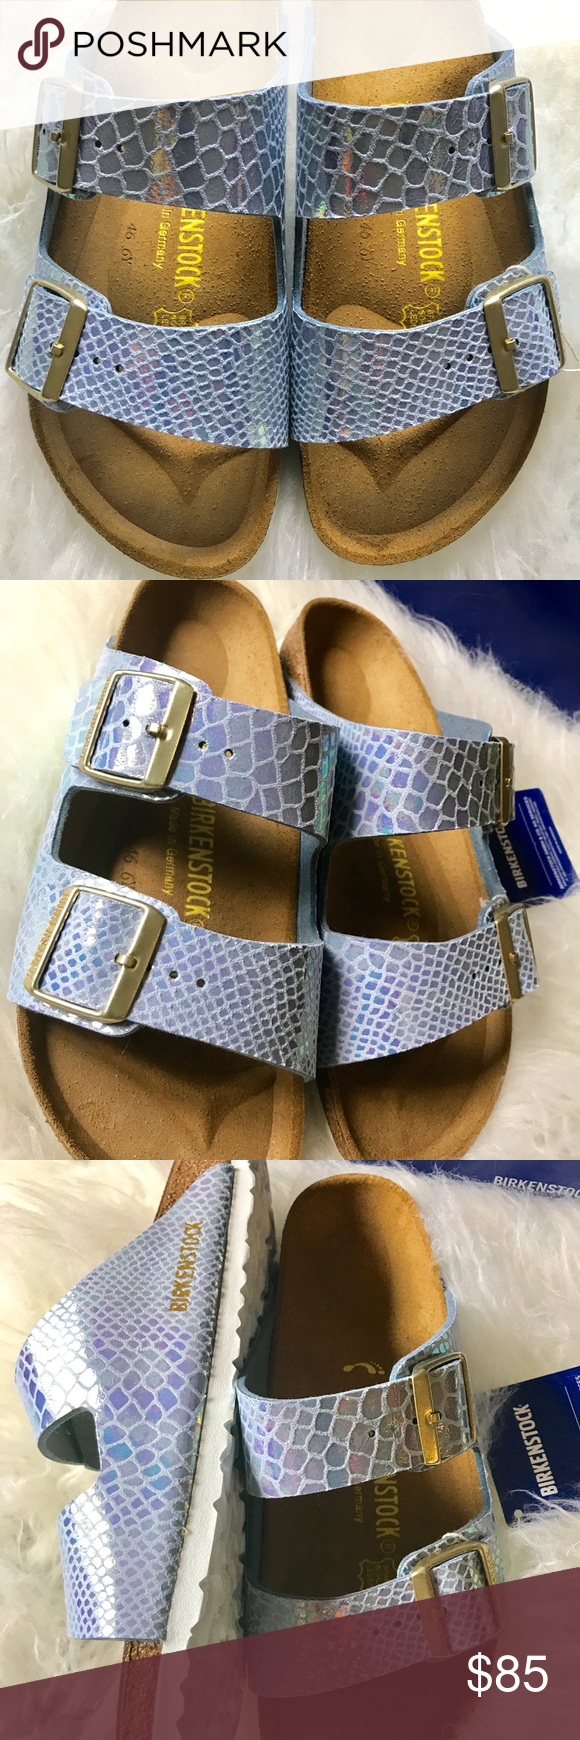 BNWT BIRKENSTOCK SHINY SNAKE SKY 39 N Brand new with tags & box. Box might not be in perfect shape due to handling.  Sz 39 narrow width. Please know your size in Birks before ordering. I can only guarantee I will be sending the European size stated on the listing. All items are inspected throughly and filmed before shipment.  Price is FIRM   Thanks! Birkenstock Shoes Sandals